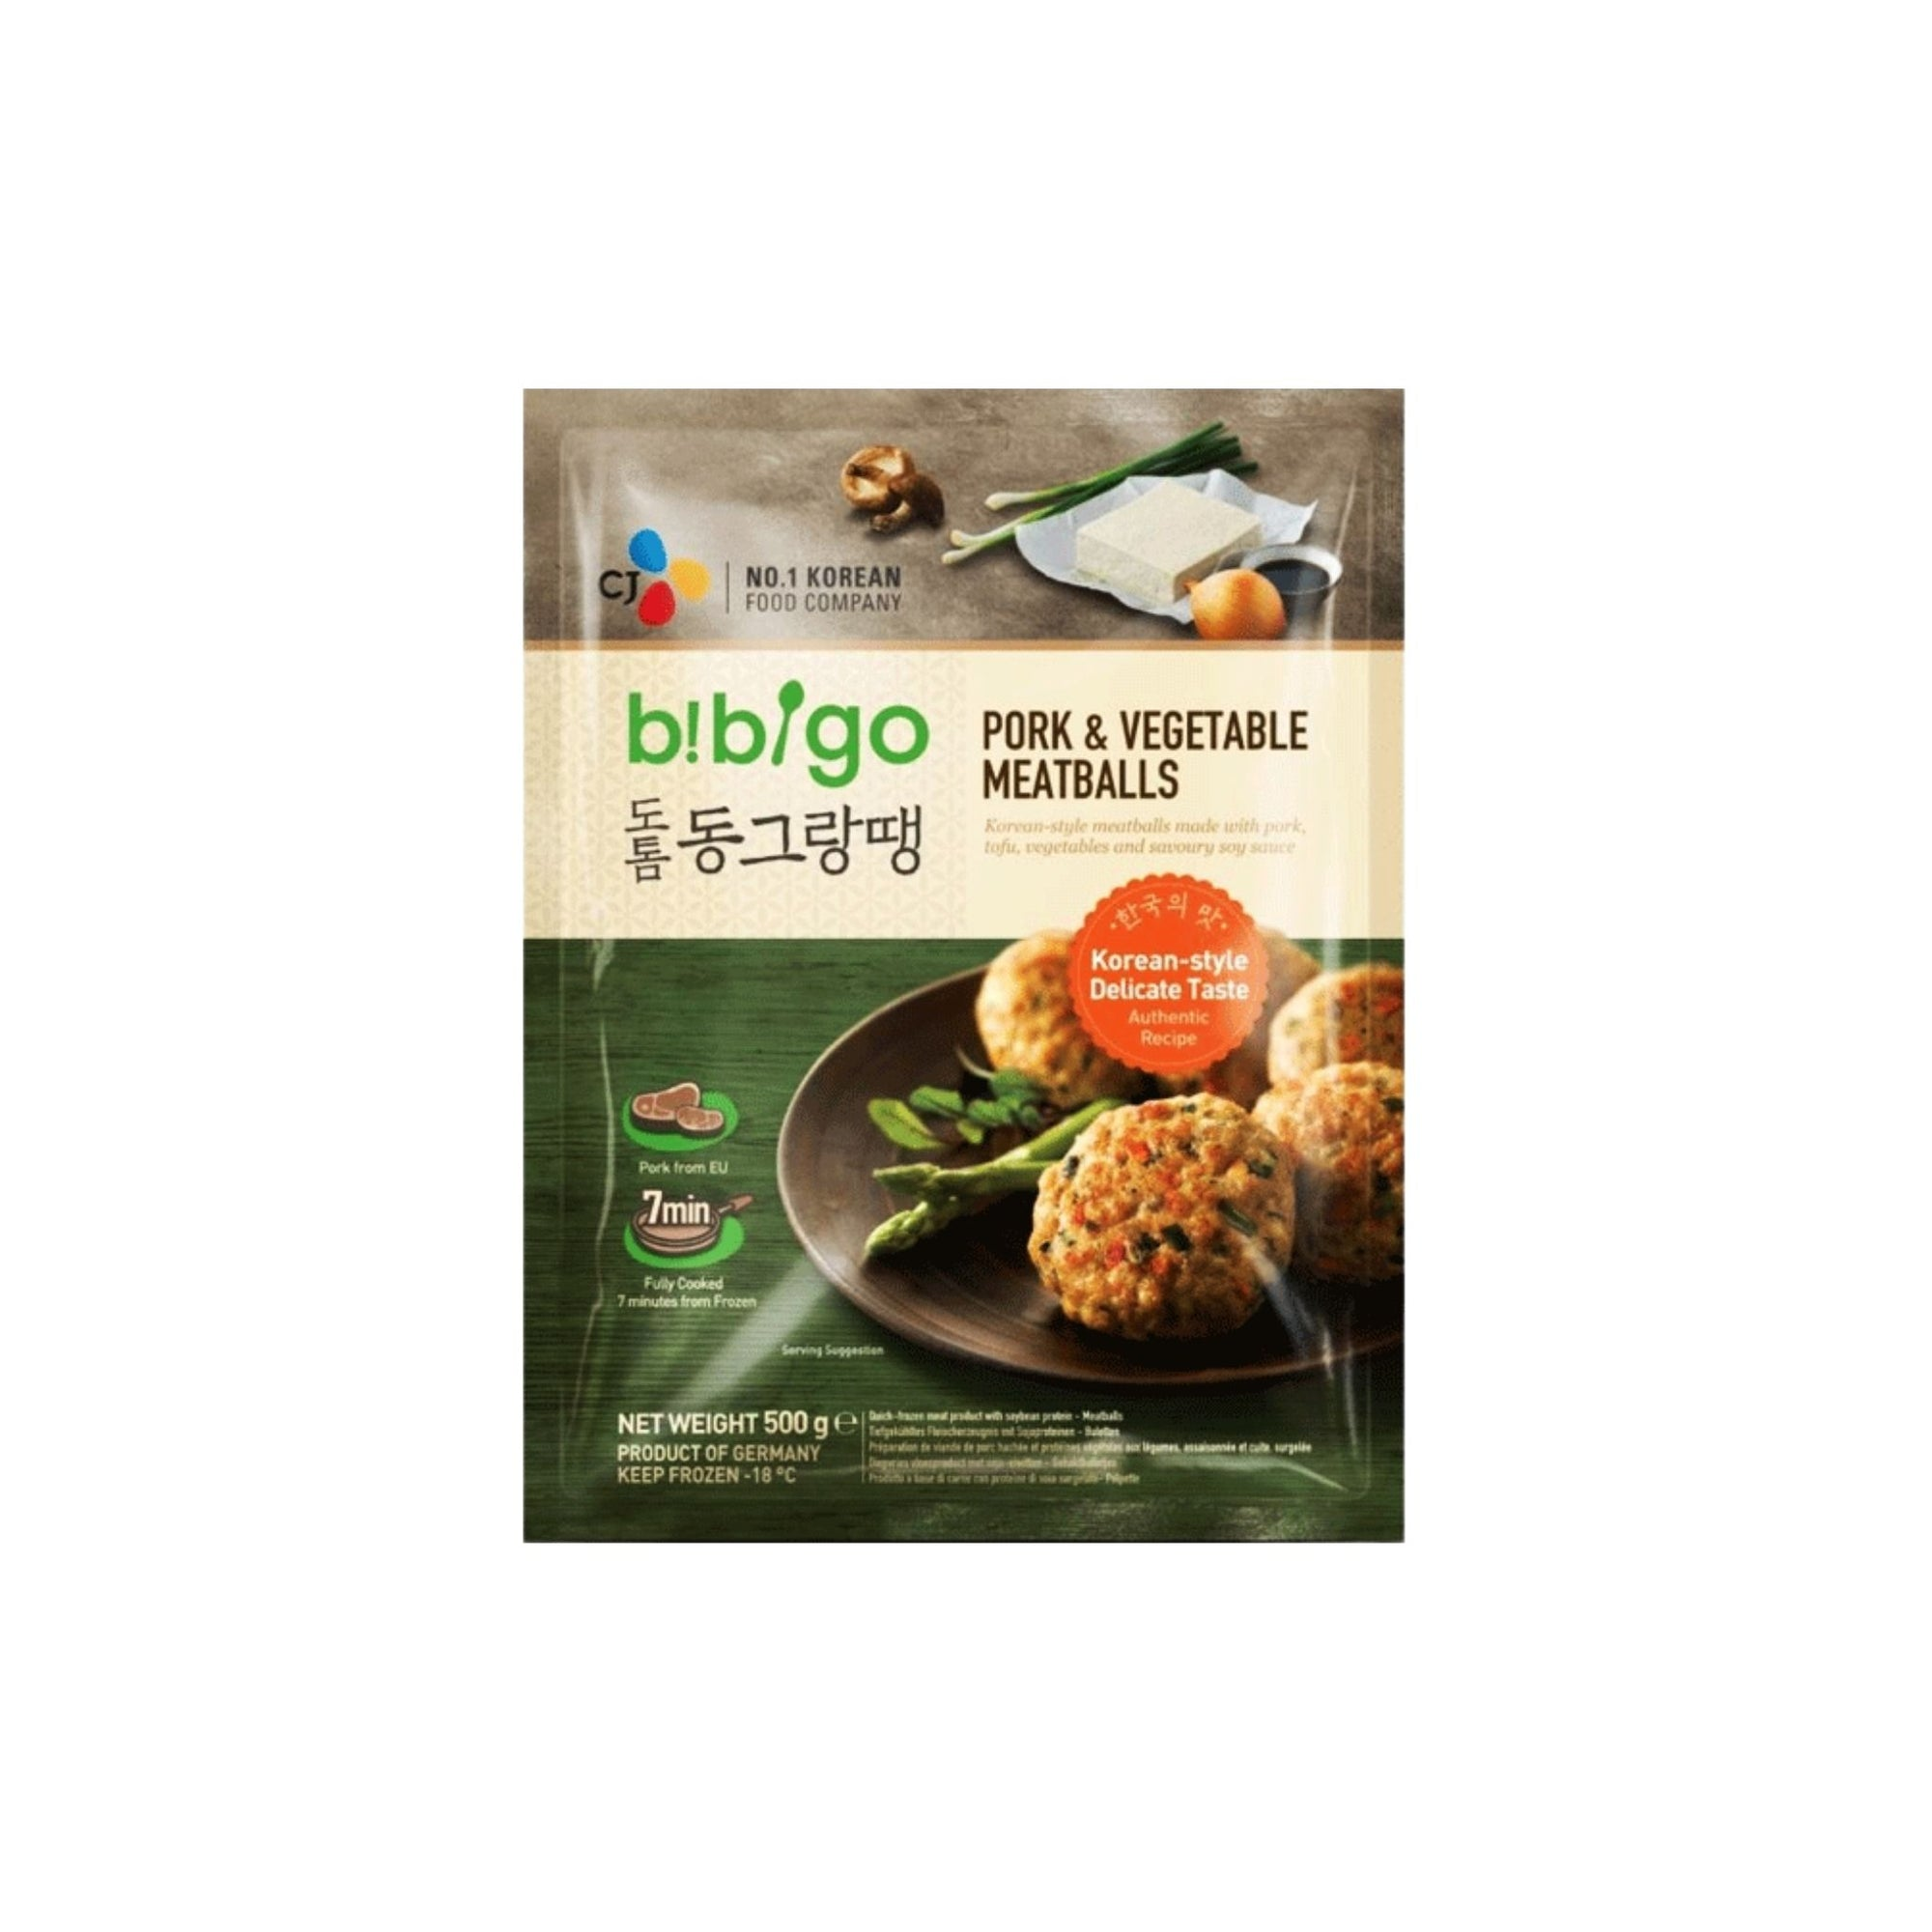 Bibigo Korean Pork and Veg Meatballs